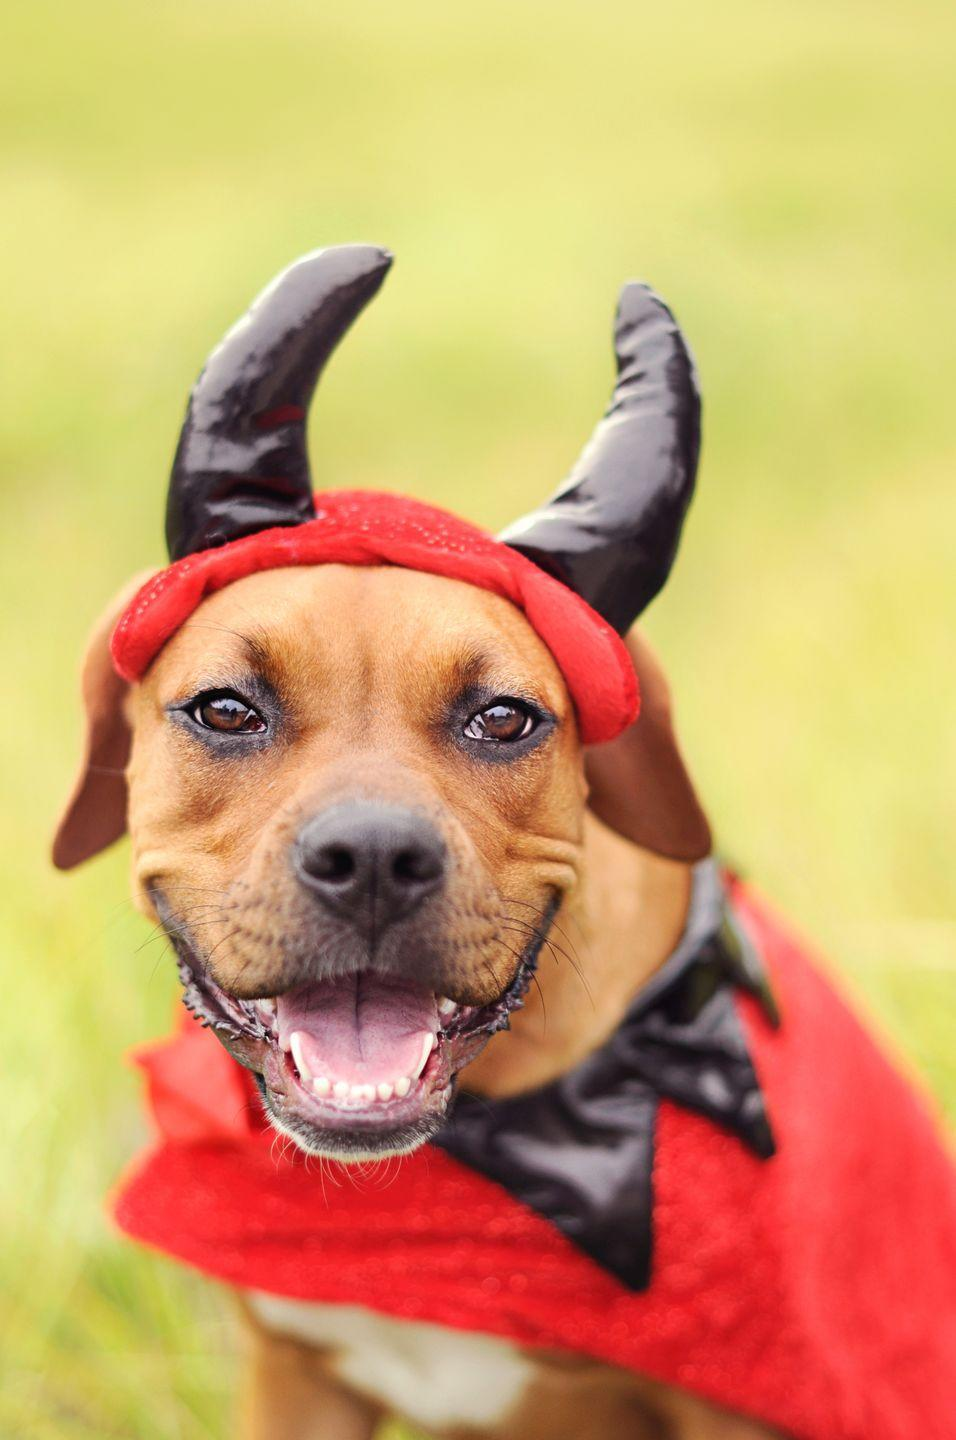 """<p>Invite over all the dogs on your block and ask their parents to <a href=""""https://www.oprahmag.com/life/g28714689/funny-dog-halloween-costumes/"""" rel=""""nofollow noopener"""" target=""""_blank"""" data-ylk=""""slk:dress them in their Halloween best"""" class=""""link rapid-noclick-resp"""">dress them in their Halloween best</a>. Set out bowls of water and treats for your furry friends—and maybe some snacks and sweets for the human party goers, too. Winner of the costume contest takes home a new toy! </p><p><a class=""""link rapid-noclick-resp"""" href=""""https://www.amazon.com/Midlee-Pumpkin-Find-Toy-Halloween/dp/B01KKUJ7H6/?tag=syn-yahoo-20&ascsubtag=%5Bartid%7C10072.g.28787574%5Bsrc%7Cyahoo-us"""" rel=""""nofollow noopener"""" target=""""_blank"""" data-ylk=""""slk:SHOP HALLOWEEN DOG TOYS"""">SHOP HALLOWEEN DOG TOYS</a></p>"""